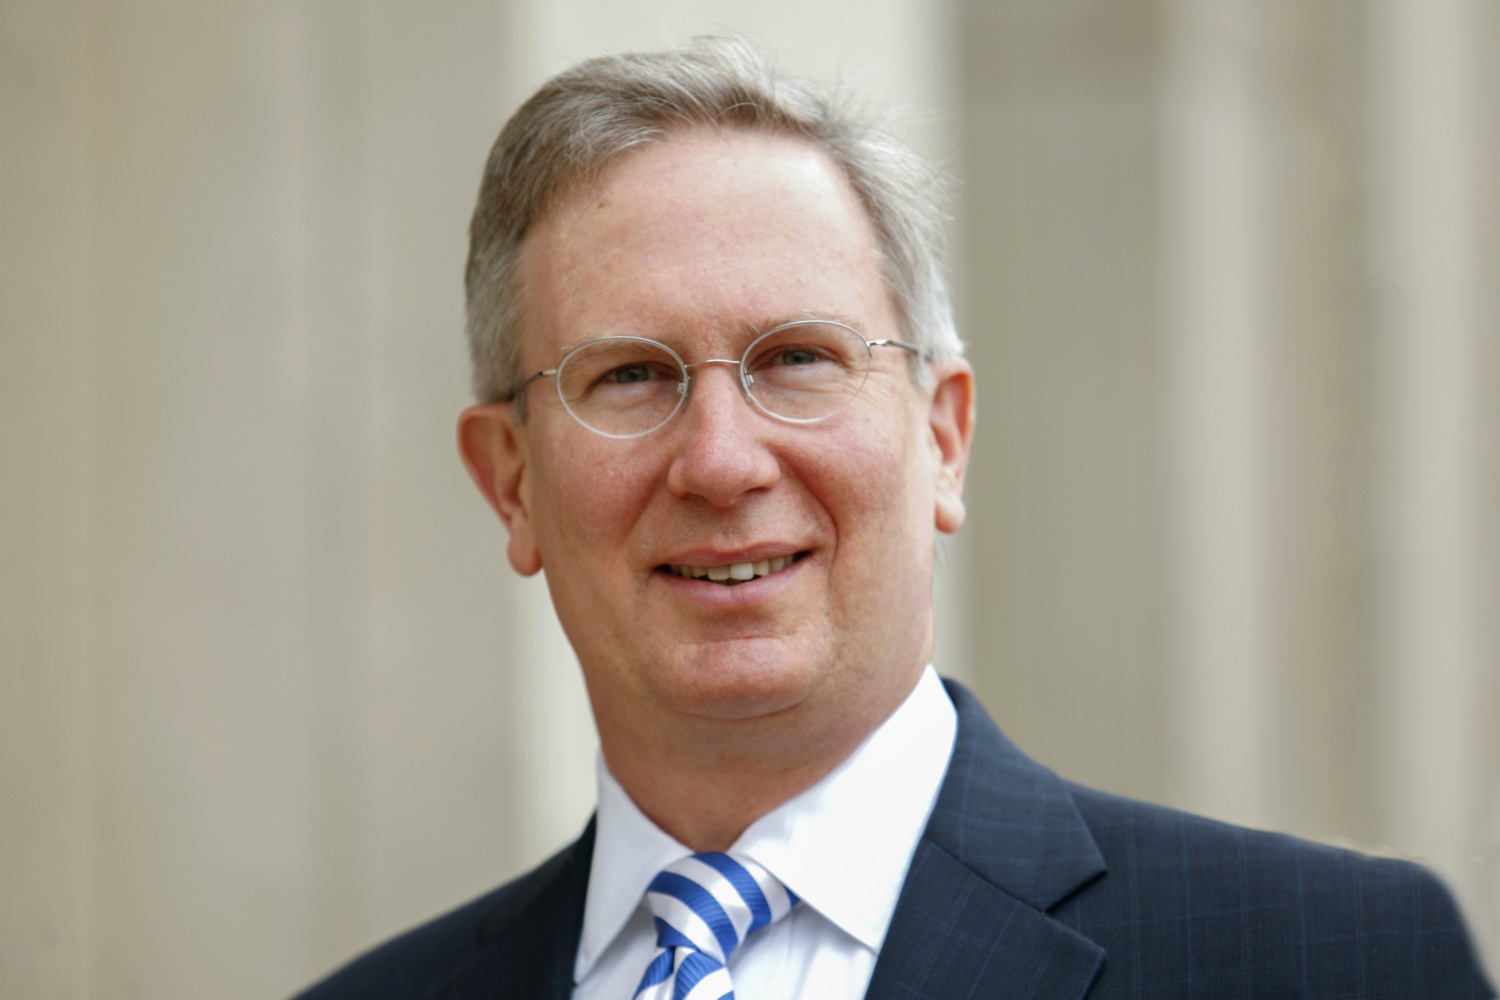 Former Law School Dean Paul Mahoney has been named to the U.S. Securities and Exchange Commission's Investor Advisory Committee.